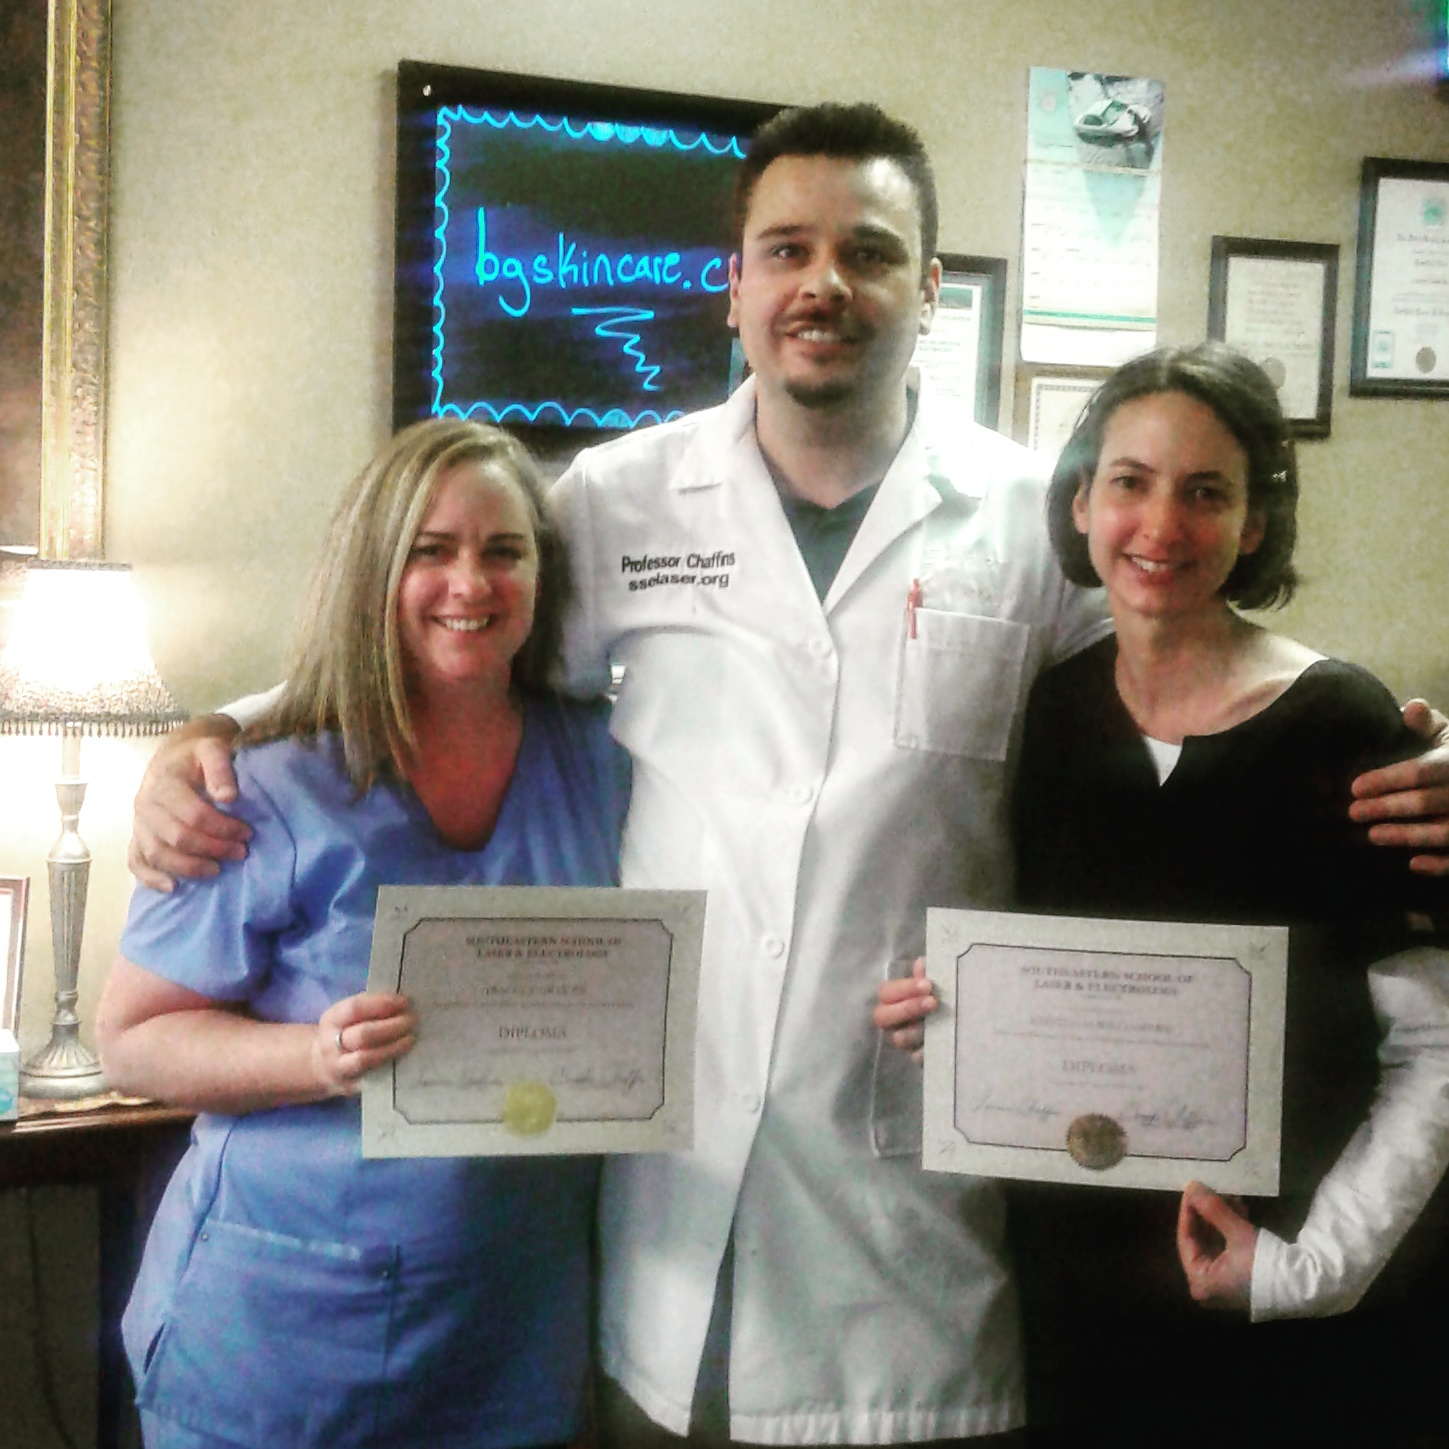 Enroll For Laser Hair Removal Andor Electrolysis Classes Today